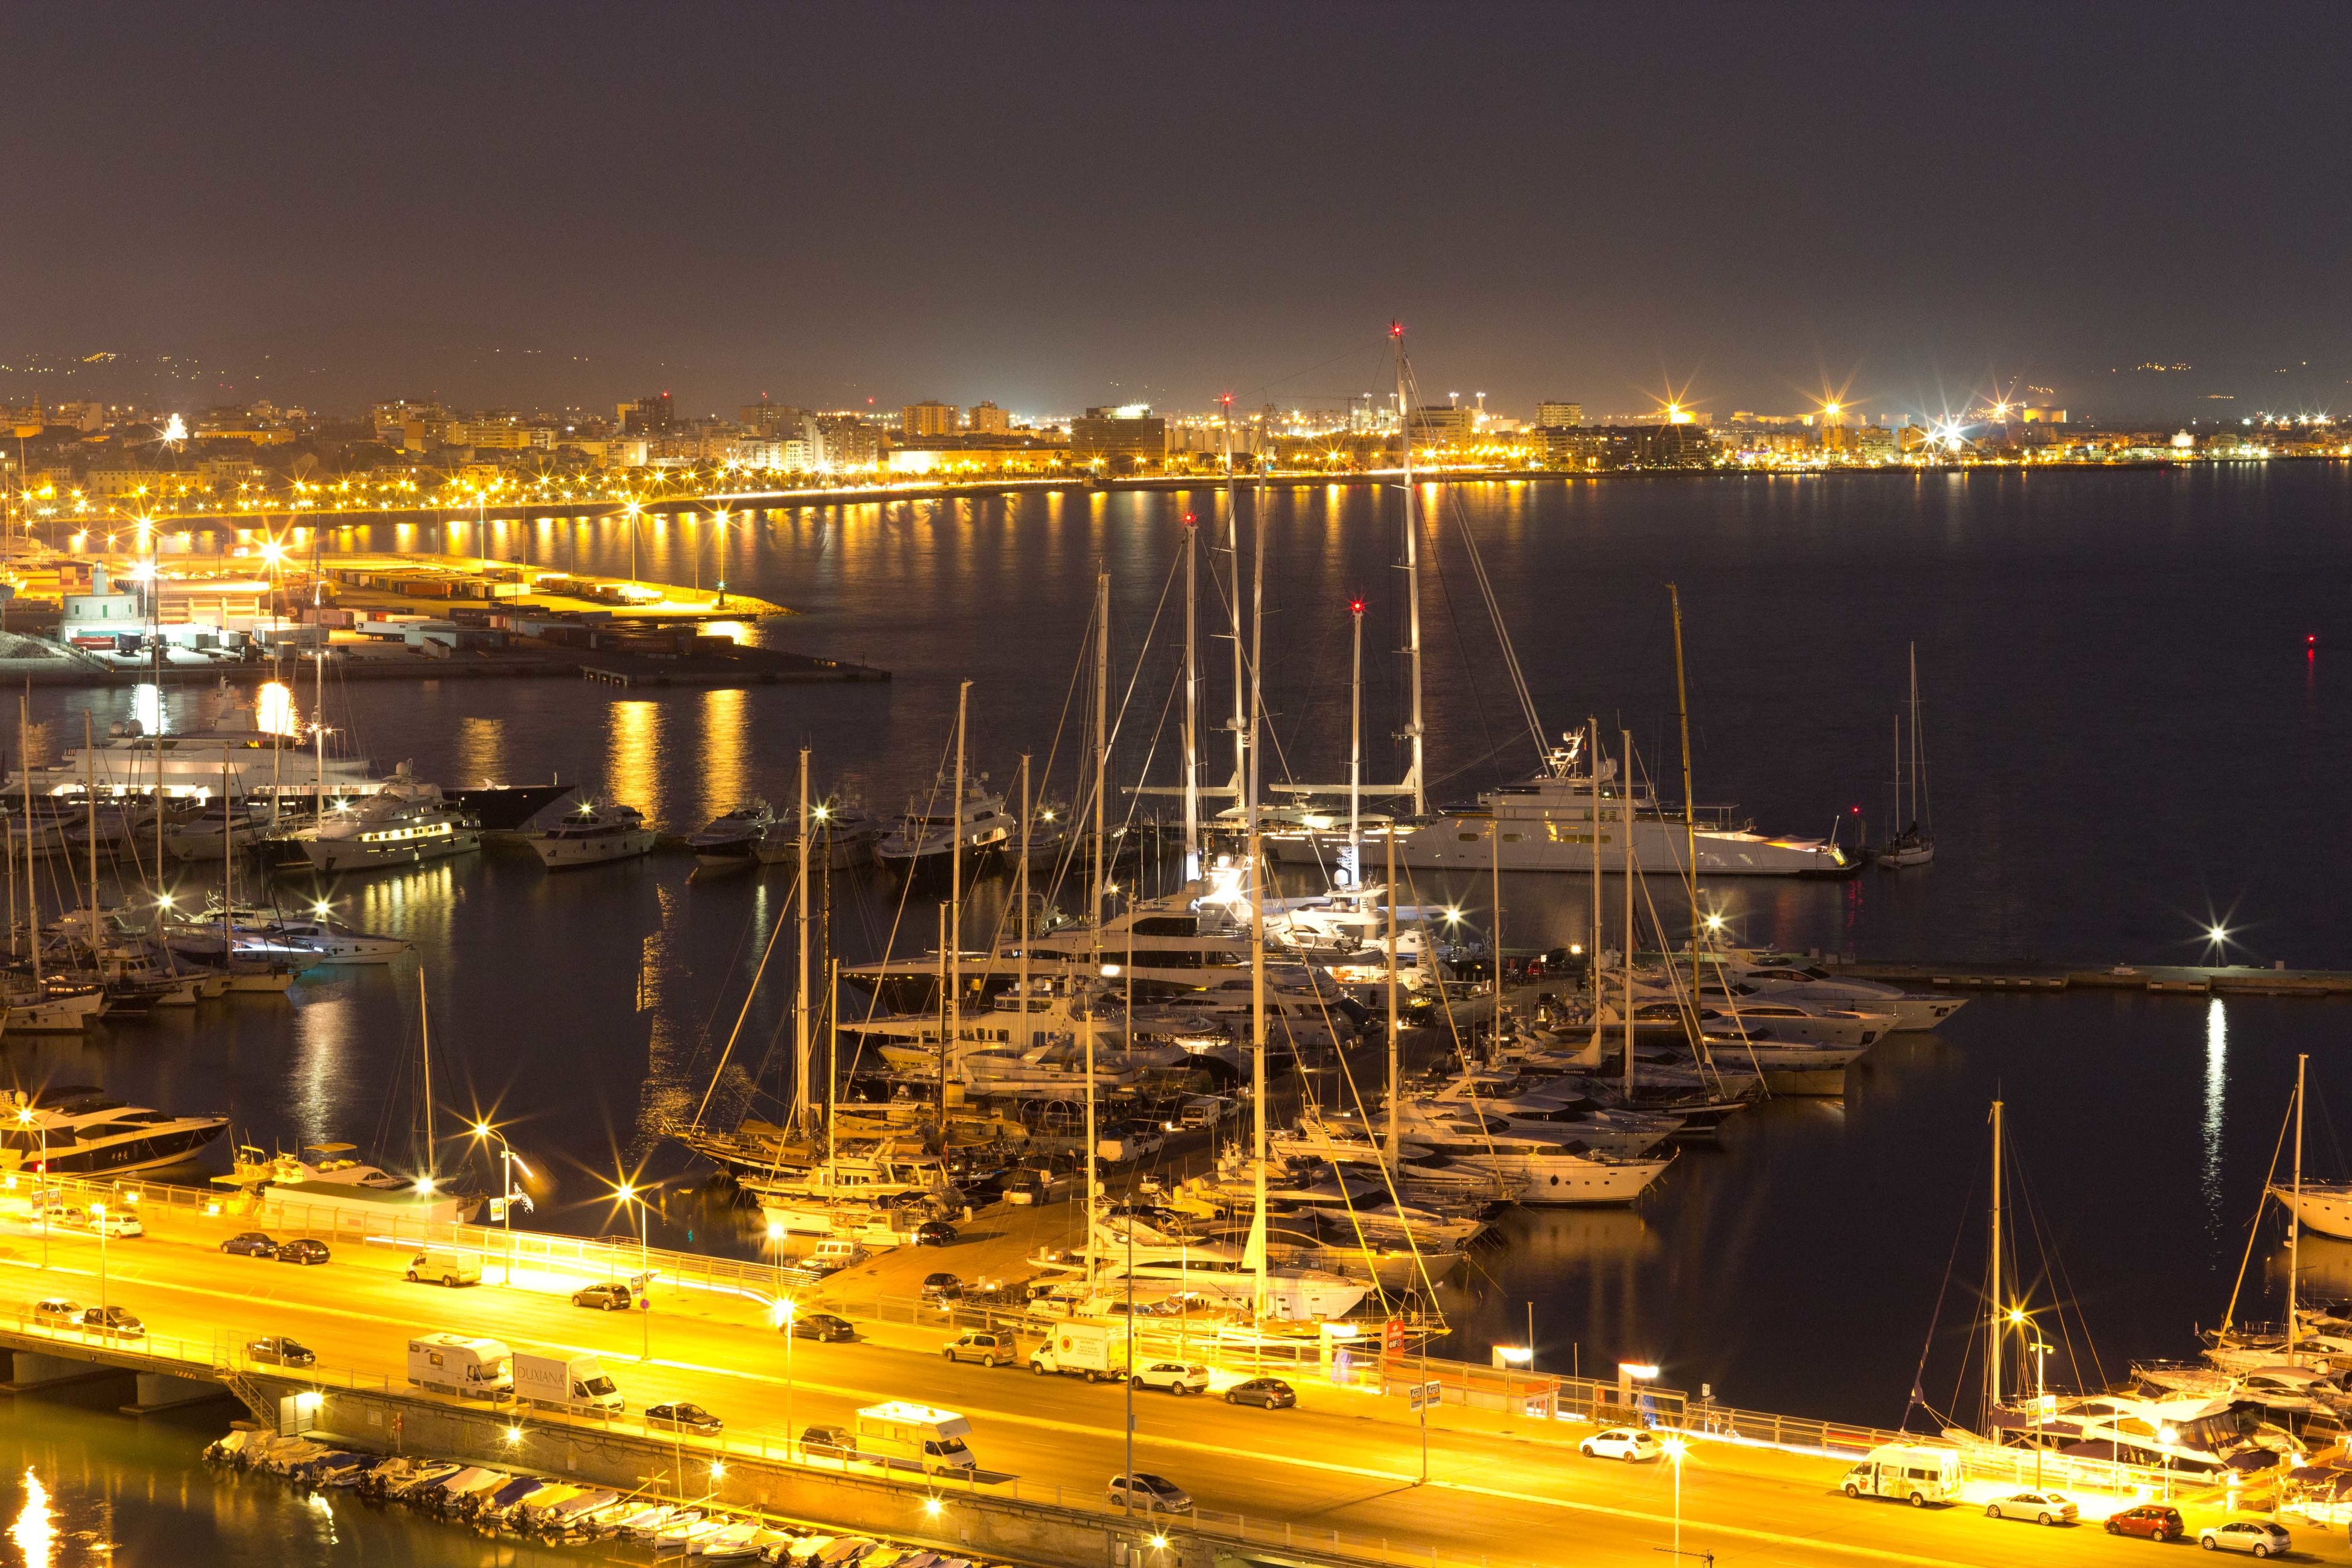 illuminated, night, nautical vessel, transportation, water, mode of transport, city, boat, cityscape, building exterior, architecture, moored, harbor, city life, sea, travel destinations, skyscraper, growth, sky, dock, urban skyline, journey, waterfront